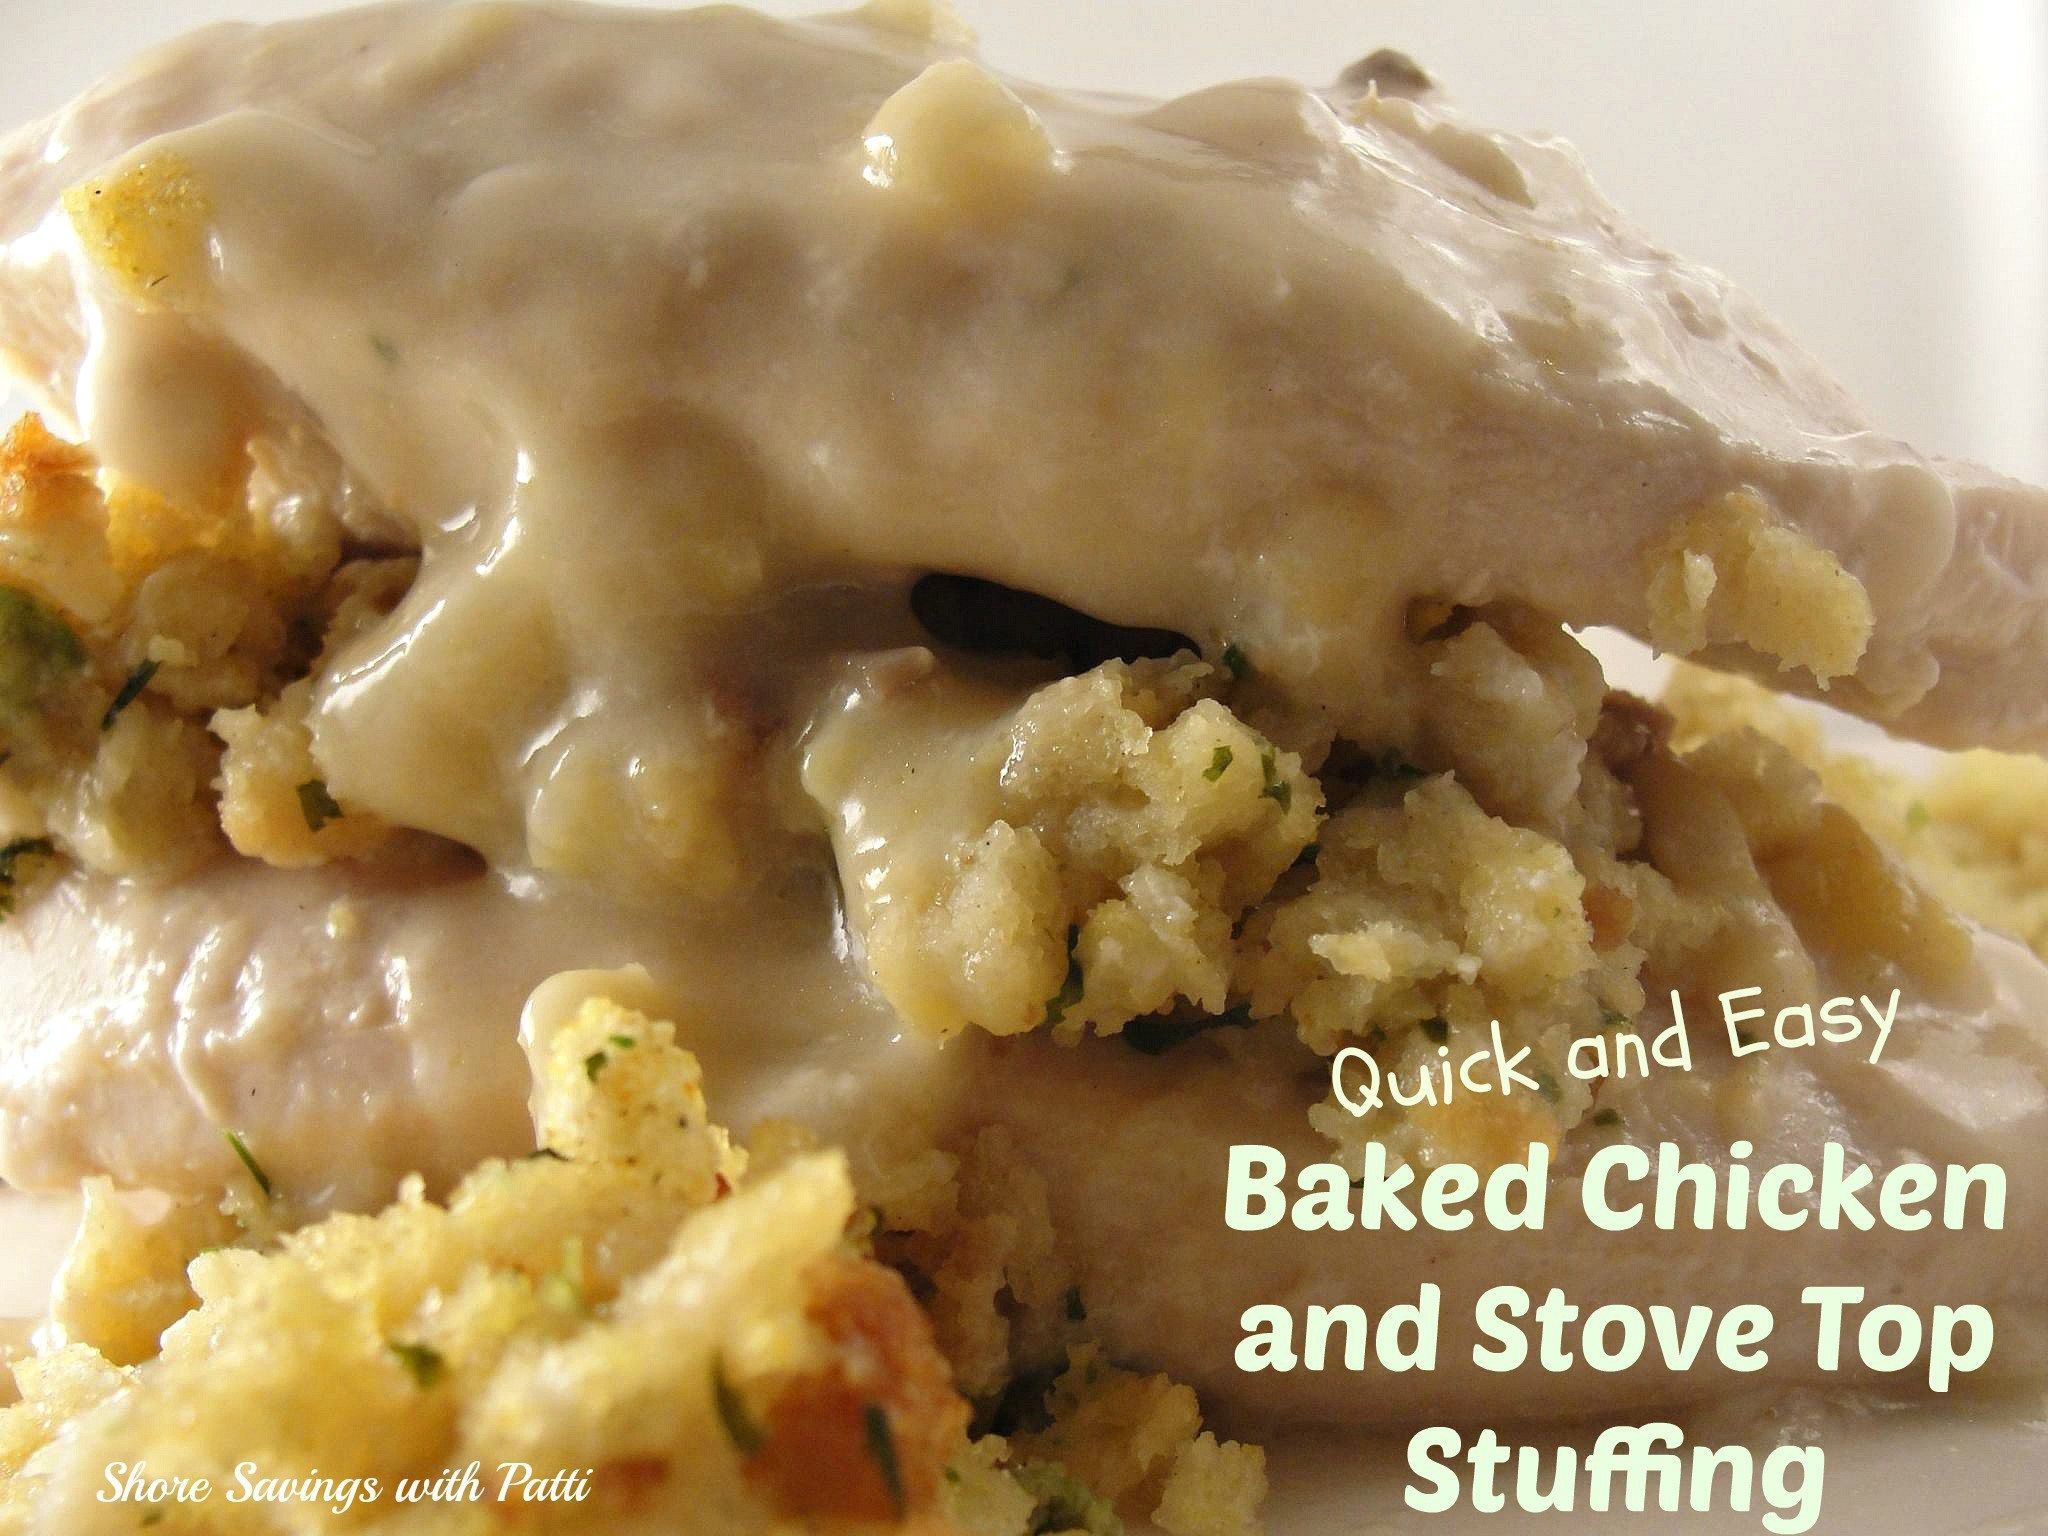 Baked Chicken And Stove Top Stuffing Is Another Quick And Easy Favorite Dinner Of Ours It S